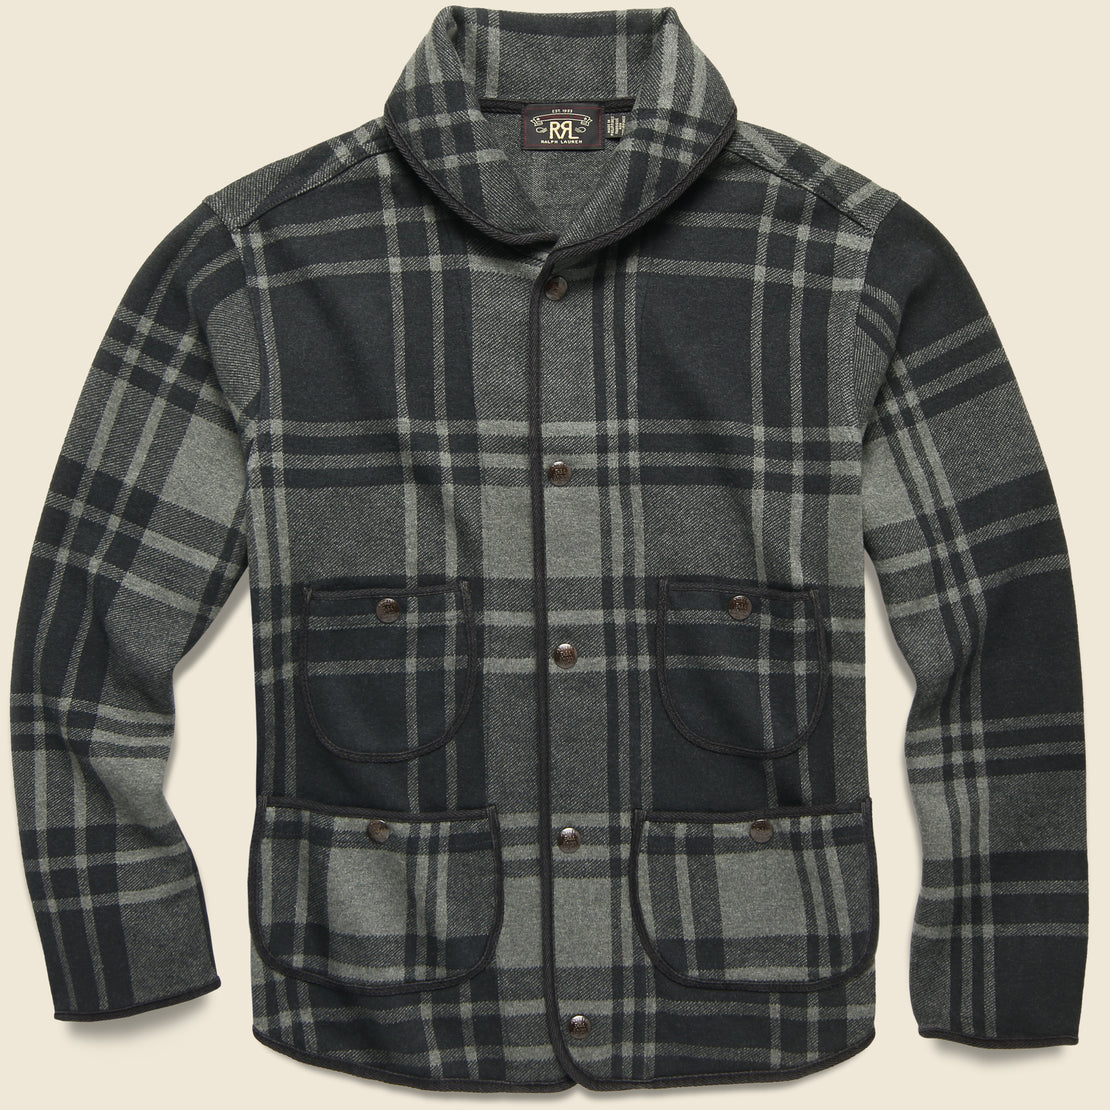 RRL Plaid Knit Jacquard Jacket - Black/Charcoal